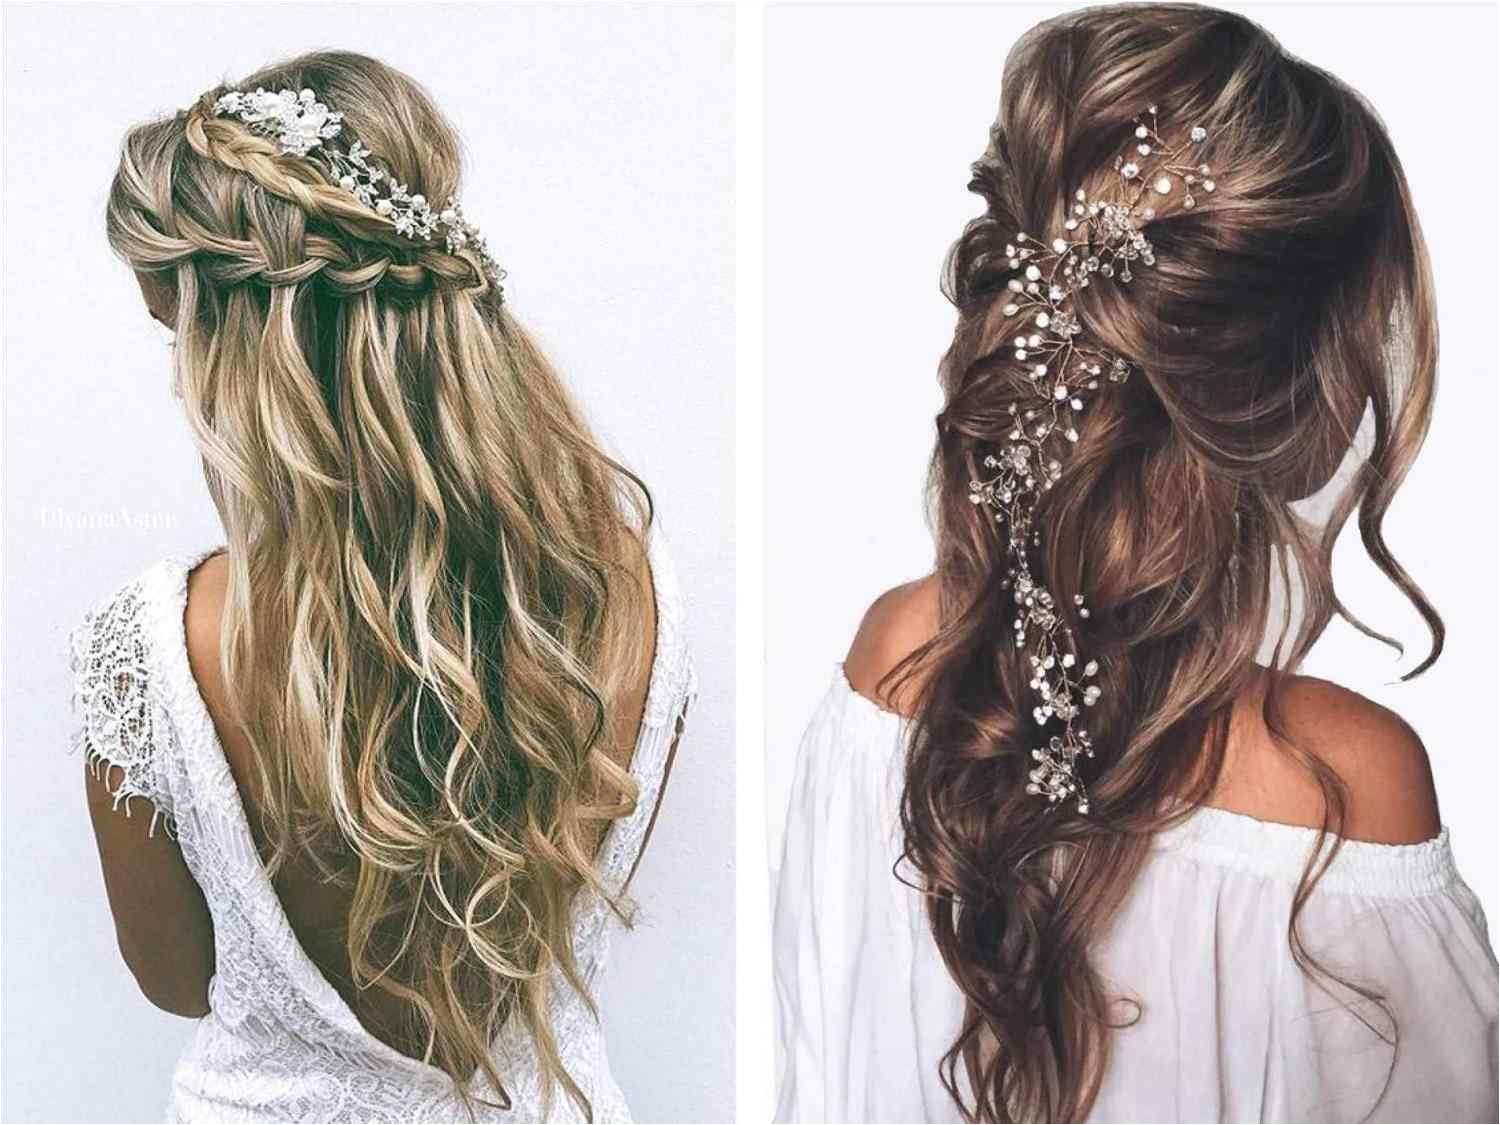 pretty curly prom hairstyles tumblr princessy half updo youtube hairstyle for medium hair hairstyle curly prom hairstyles tumblr for medium hair side photo long side curly